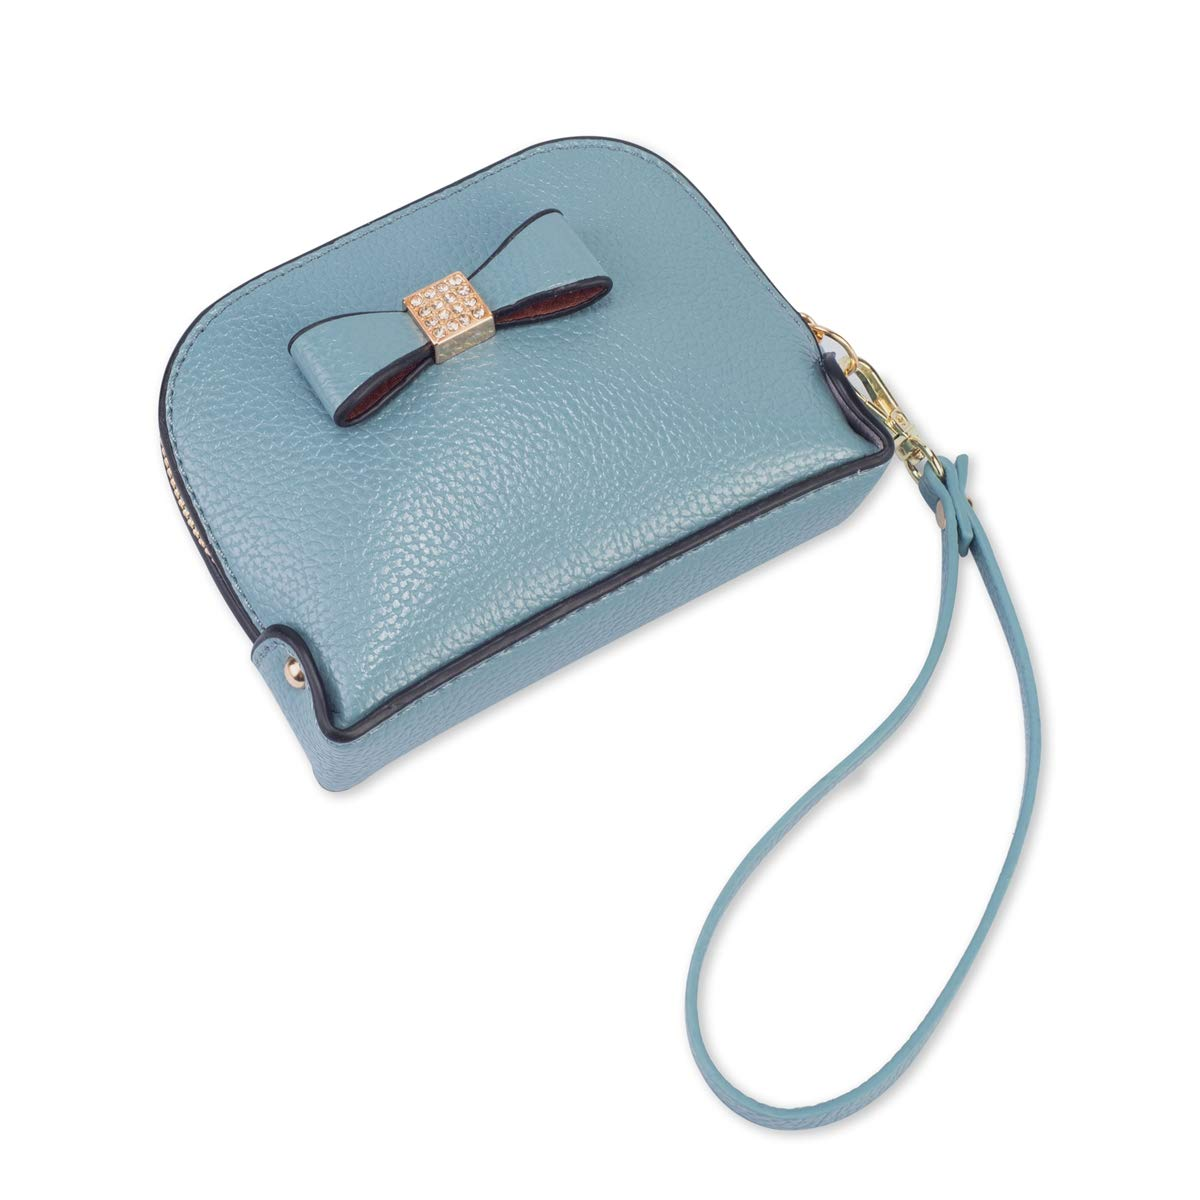 Coin Purse Wallet leather Wristlet Handbags with Wrist Strap Cute Mini Designer Pouch Great Gifts for Women Girls (Bow Blue) by JZE (Image #6)